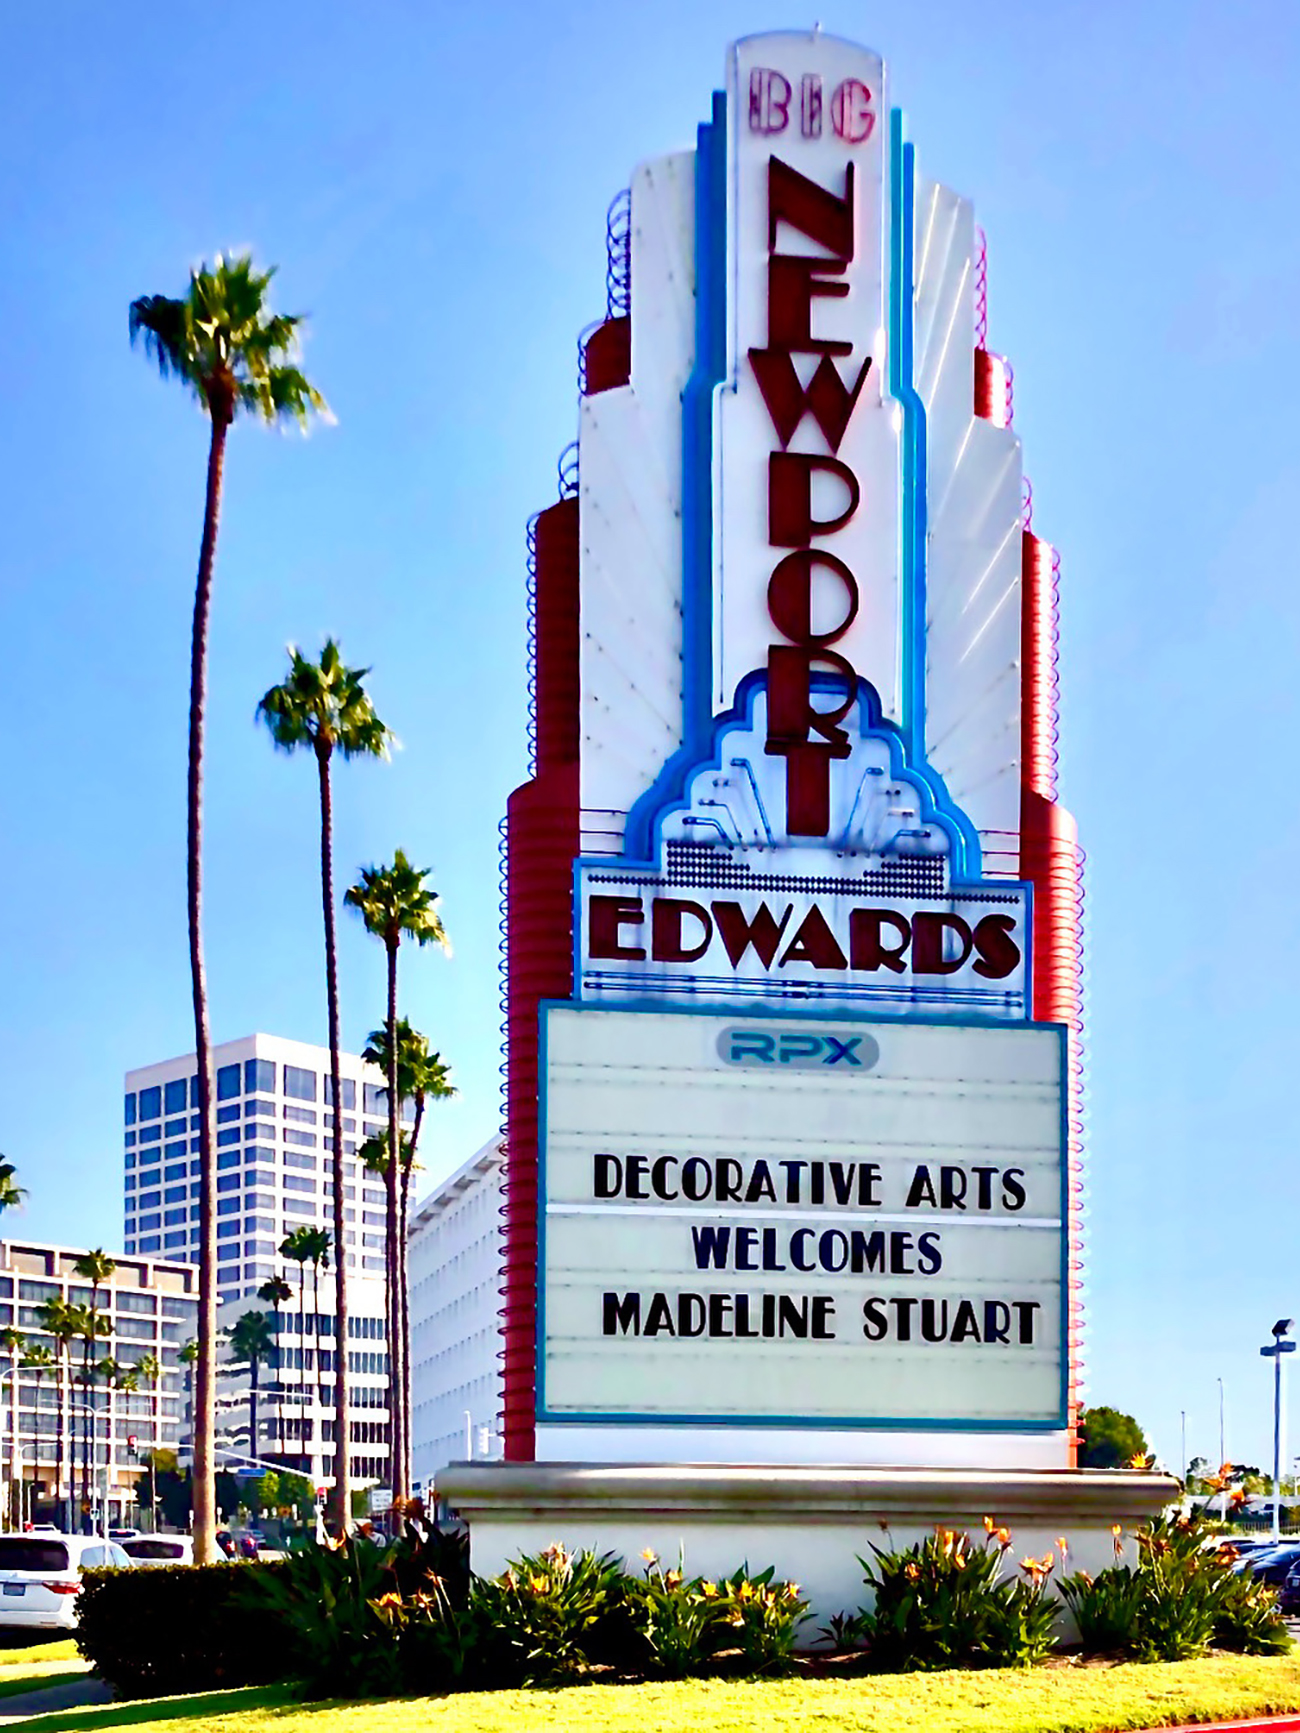 Decorative Arts Society in Newport Beach